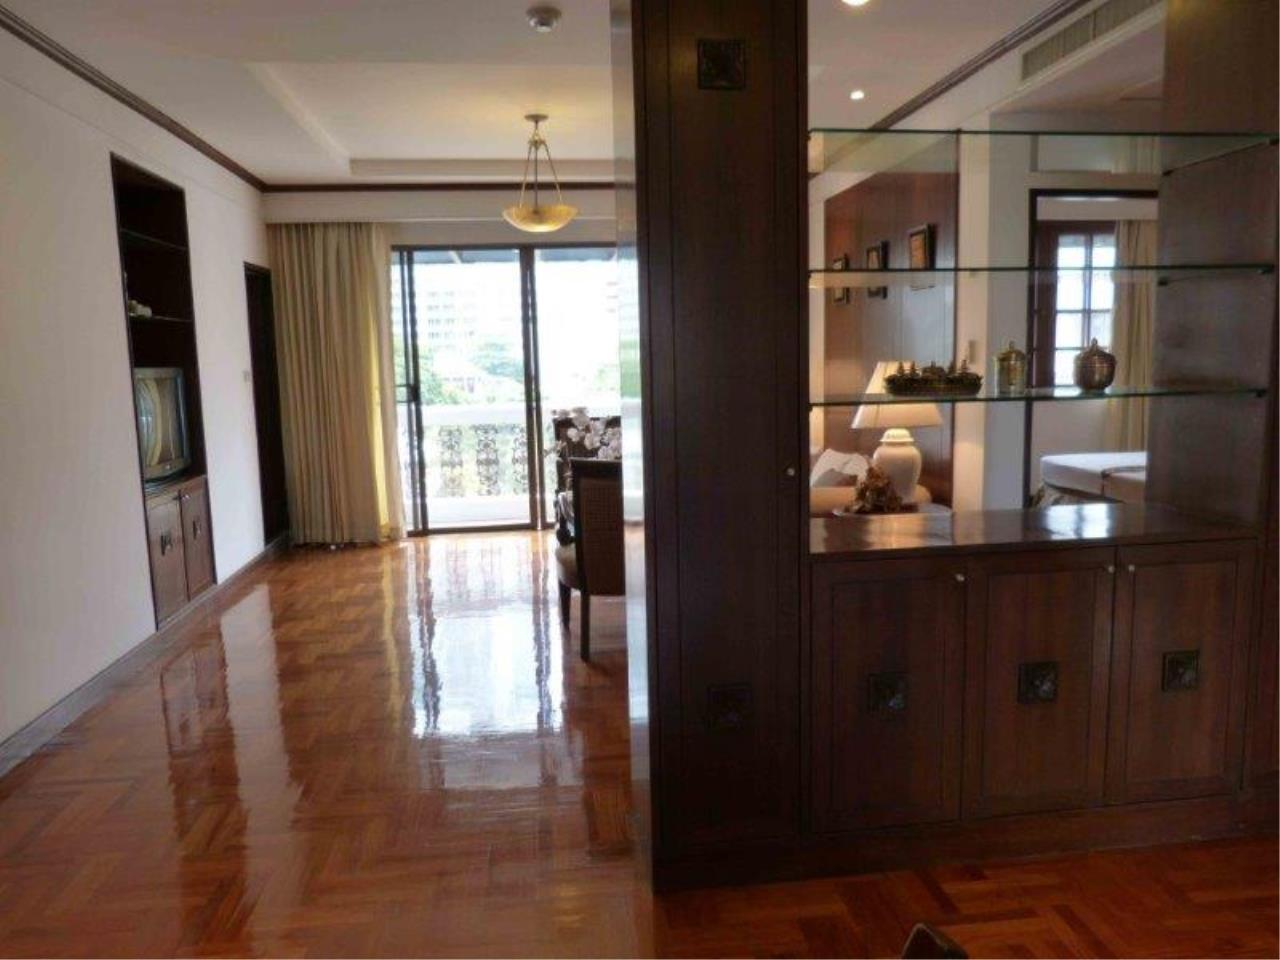 Century21 Skylux Agency's Piya Place Tonson / Apartment (Serviced) For Rent / 2 Bedroom / 88 SQM / BTS Chit Lom / Bangkok 4